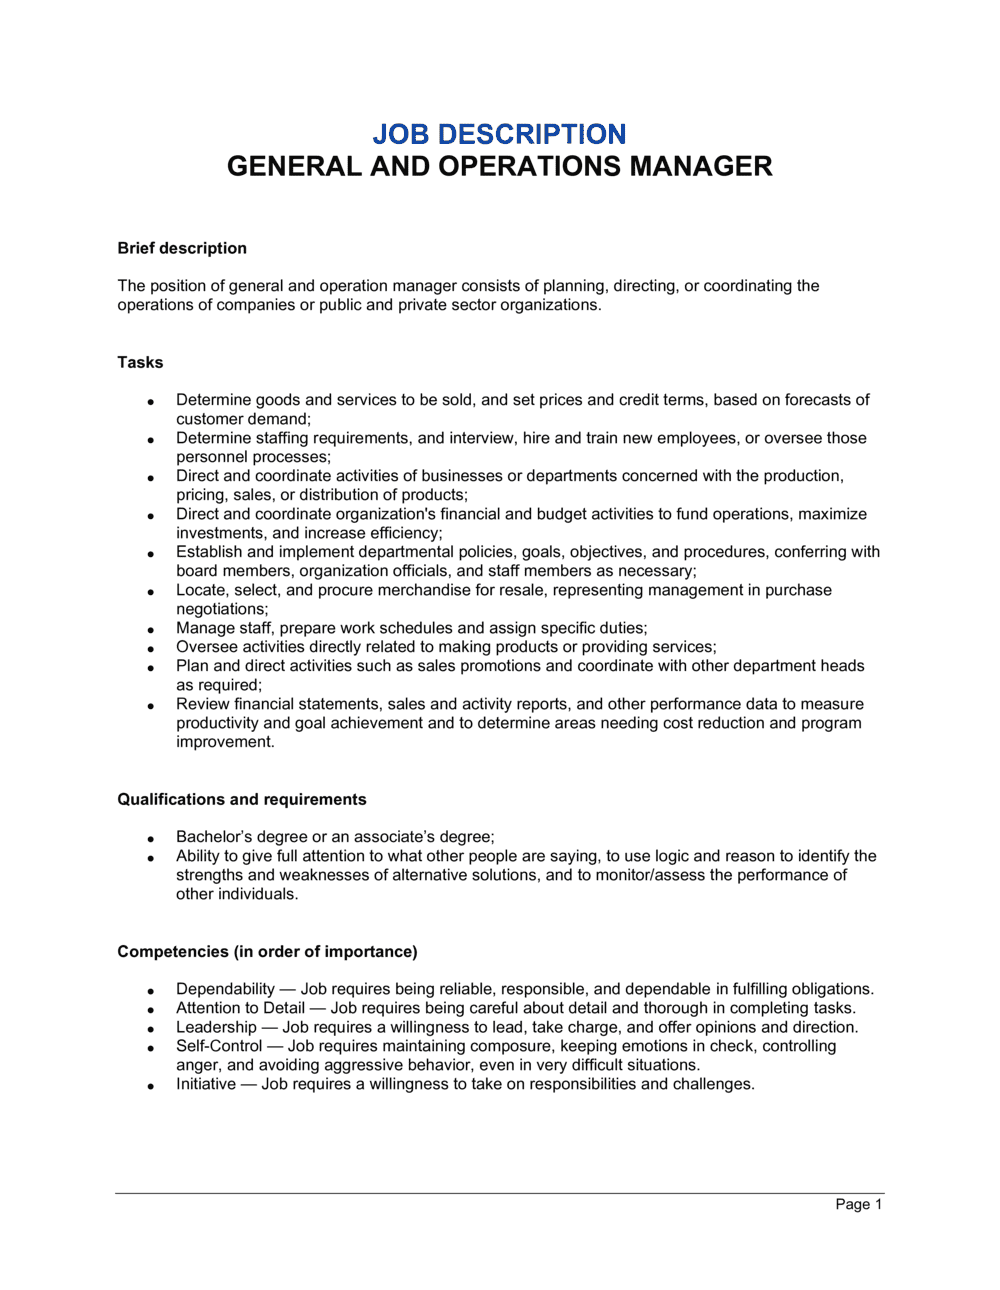 Business-in-a-Box's General and Operations Manager Job Description Template